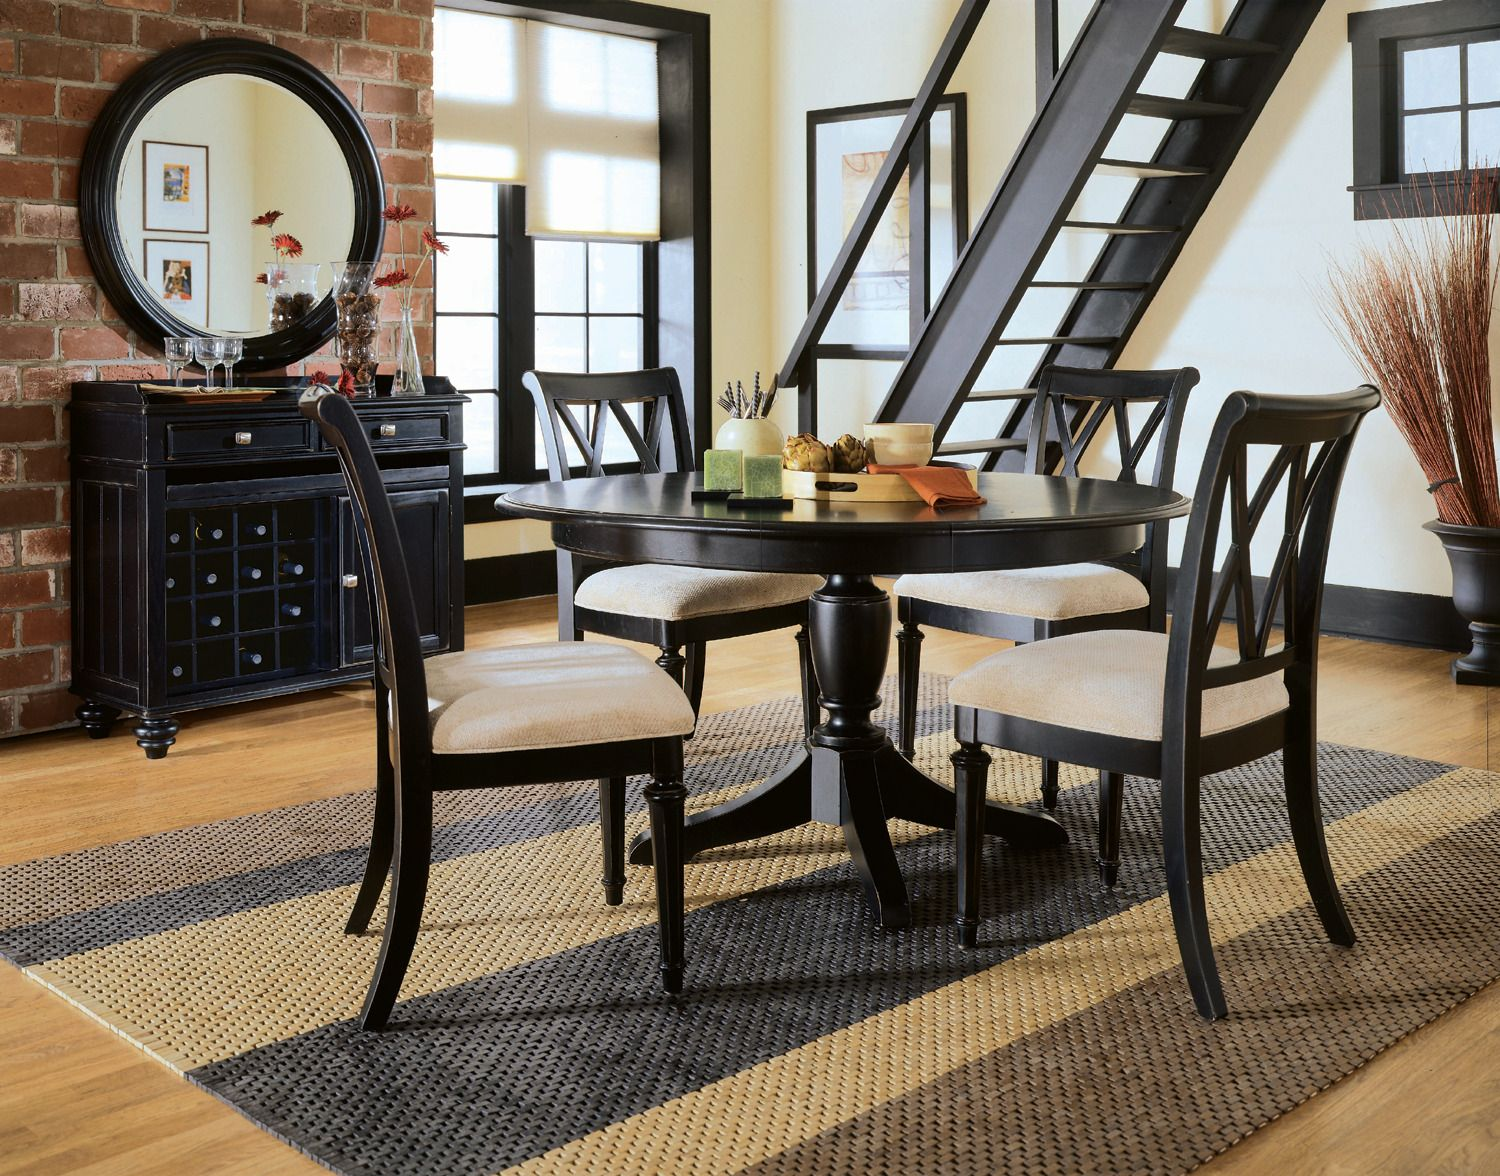 Camden Black Roundoval Dining Table Setamerican Drew  Home Fair Oval Dining Room Table Set Decorating Inspiration